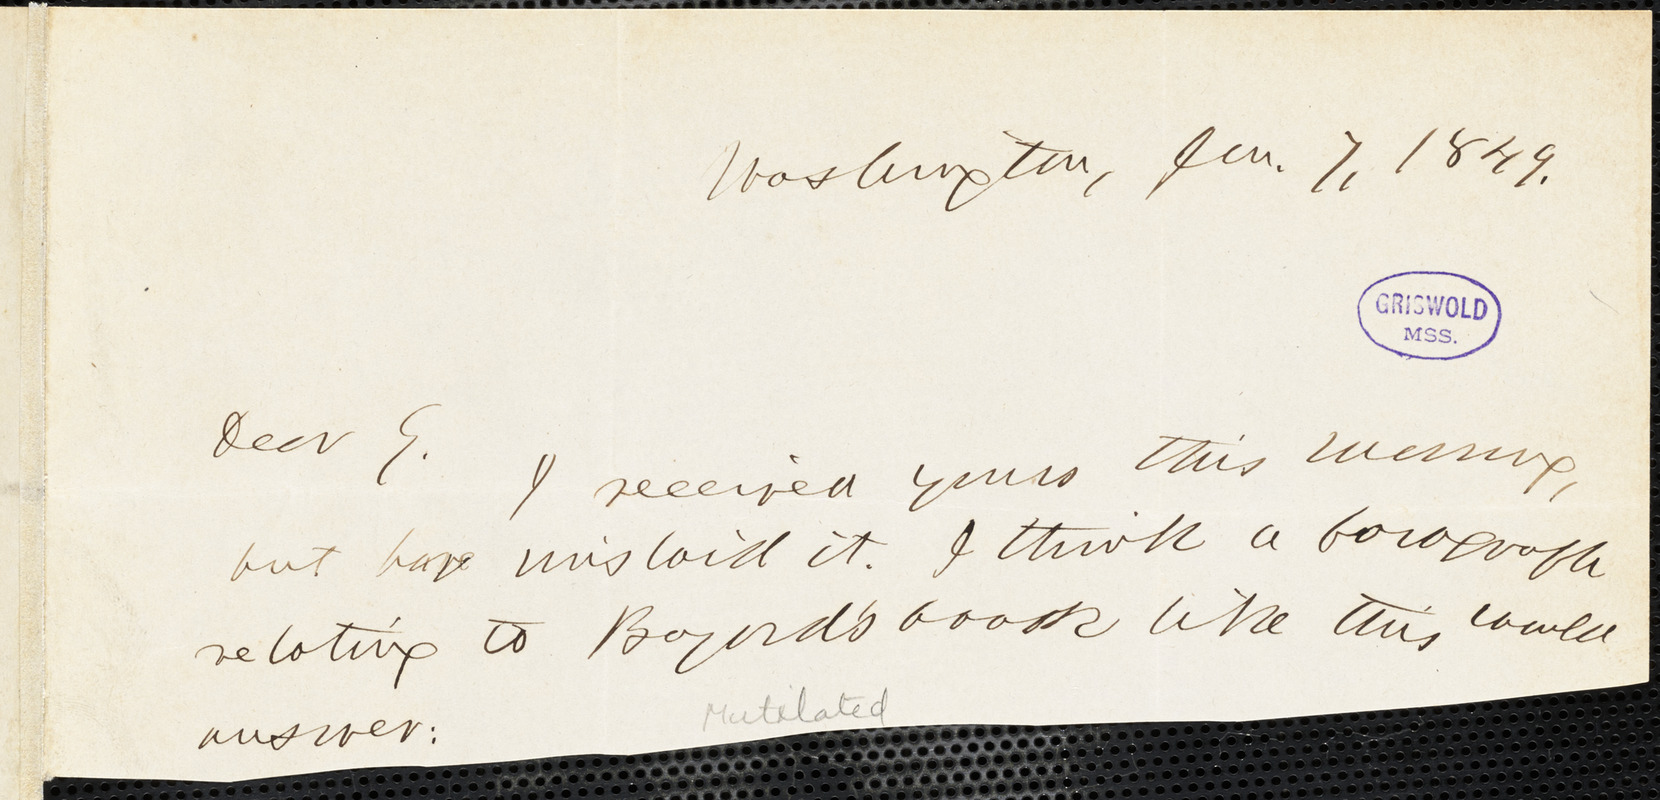 Horace Greeley, Washington, DC., autograph letter signed to R. W. Griswold, 7 January 1849